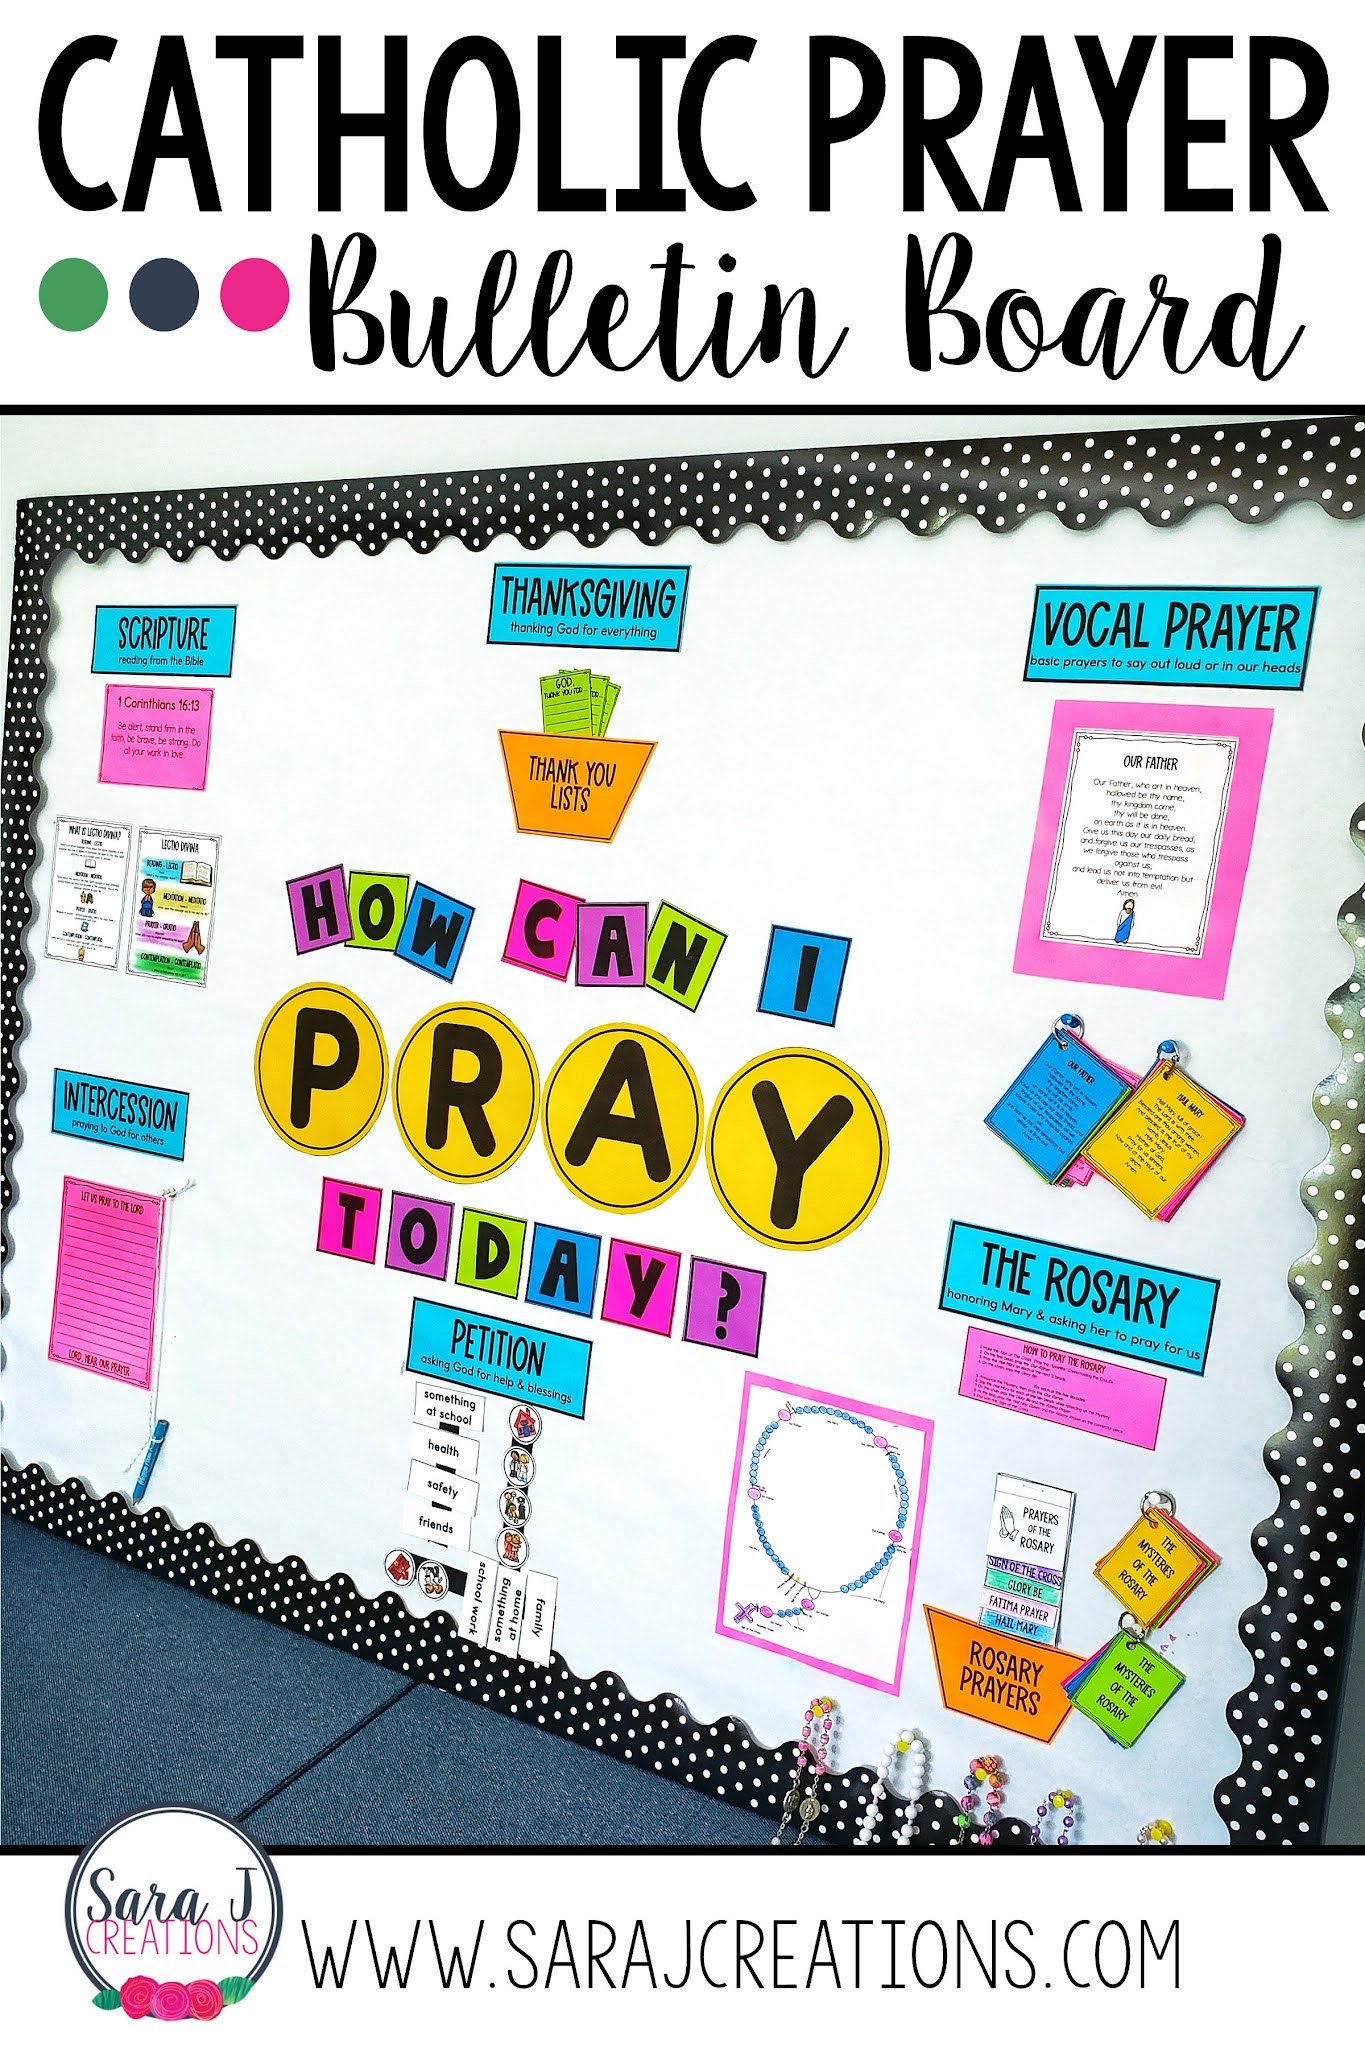 Save time with this printable Catholic Prayers Bulletin Board. Easy to print, assemble and use all year long.